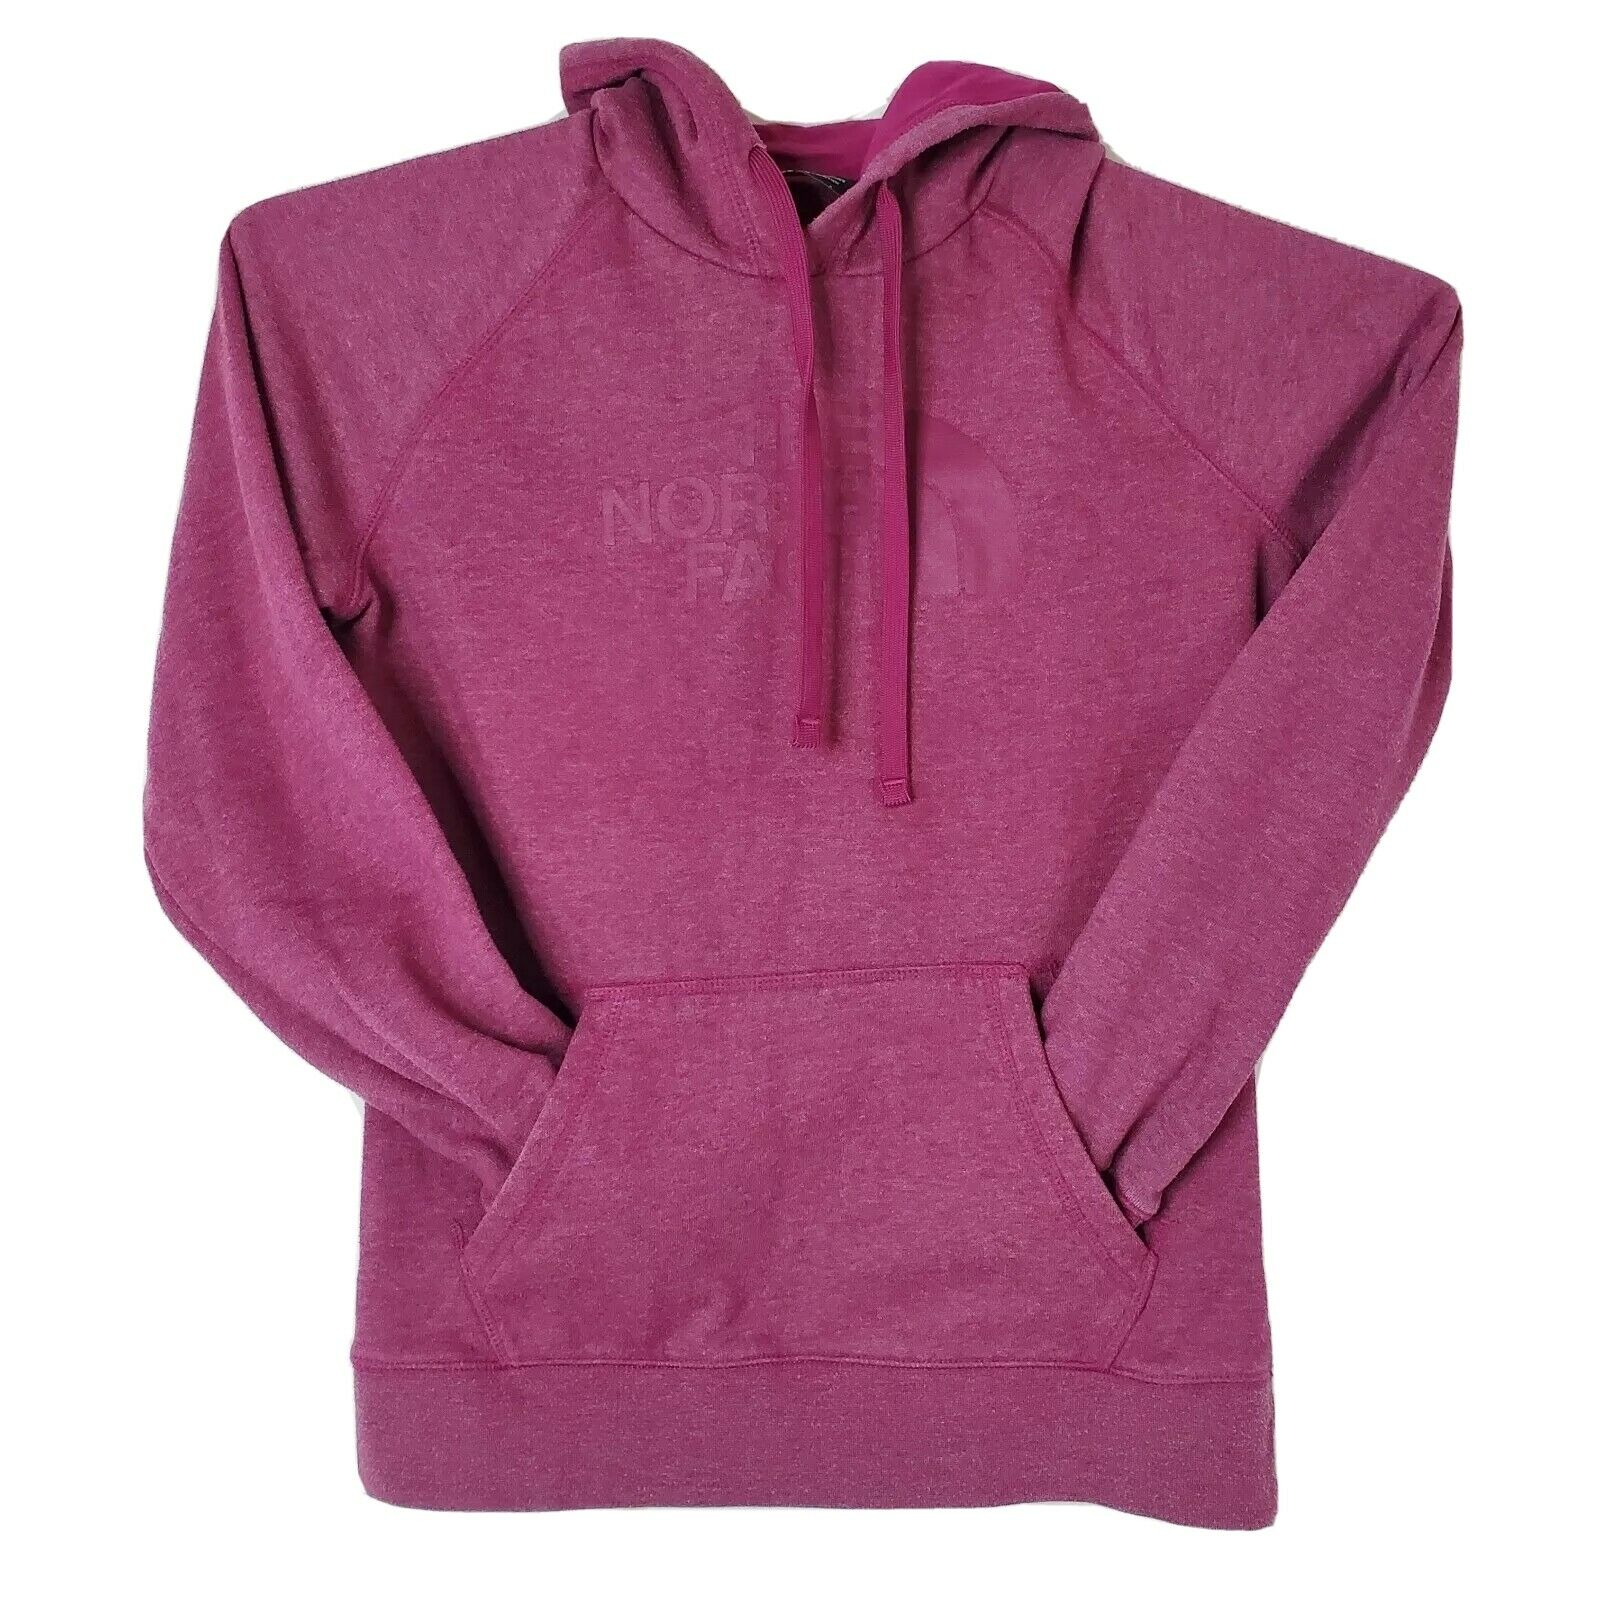 The North Face Womens Size Medium Pink Logo Cotton Hoodie Sweater